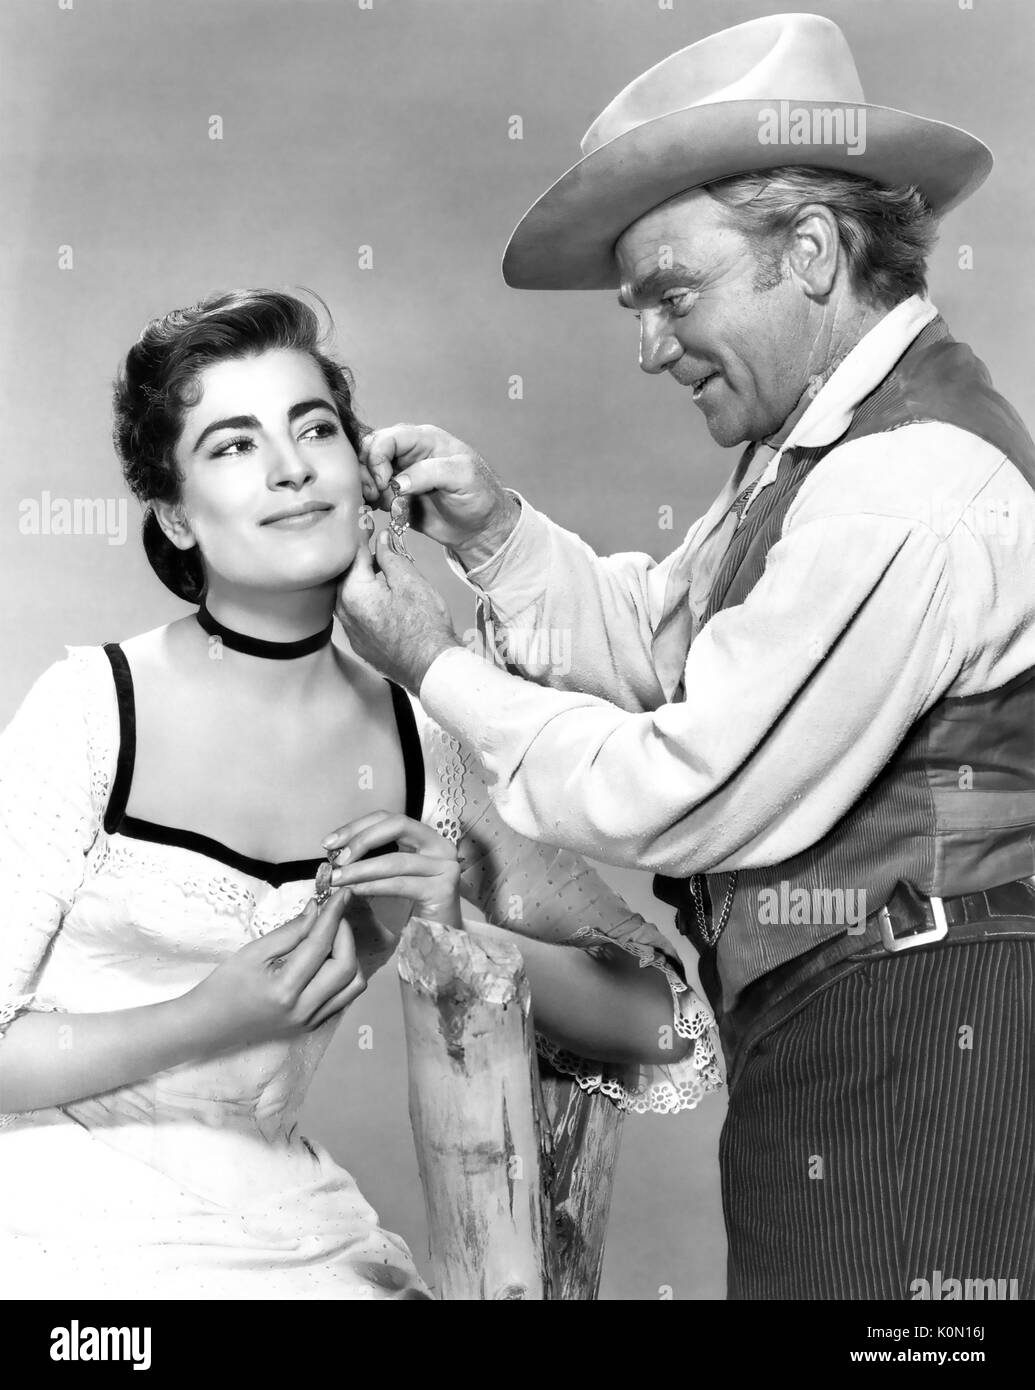 TRIBUTE TO A BAD MAN 1956 MGM film with Irene Papas and James Cagney - Stock Image